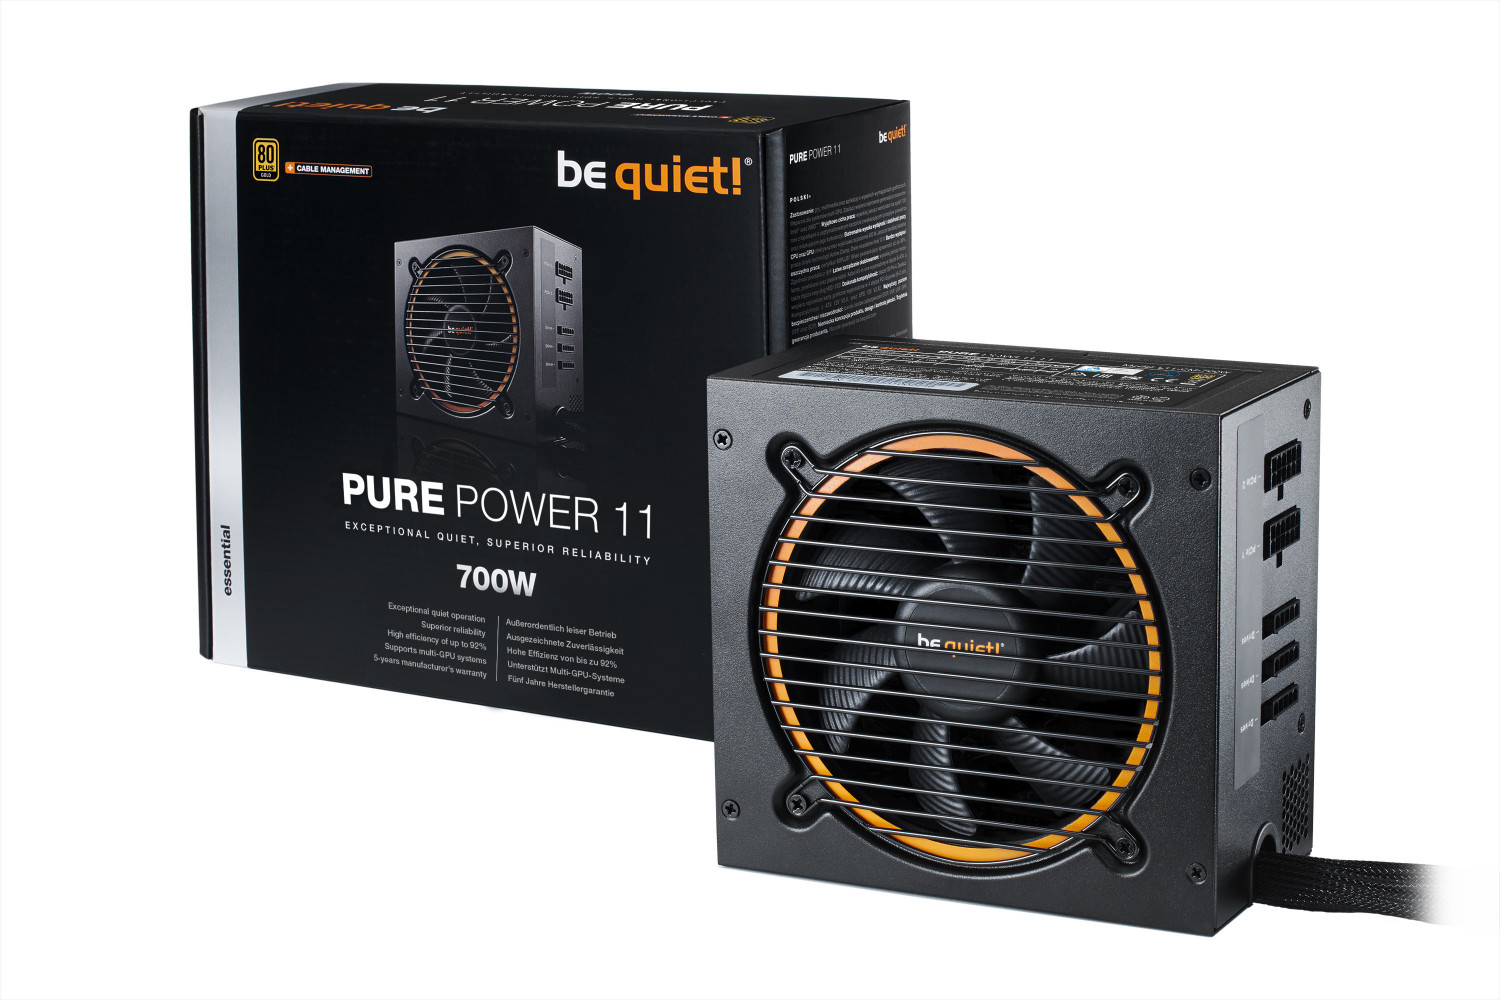 Image of be quiet! Pure Power 11 700W CM